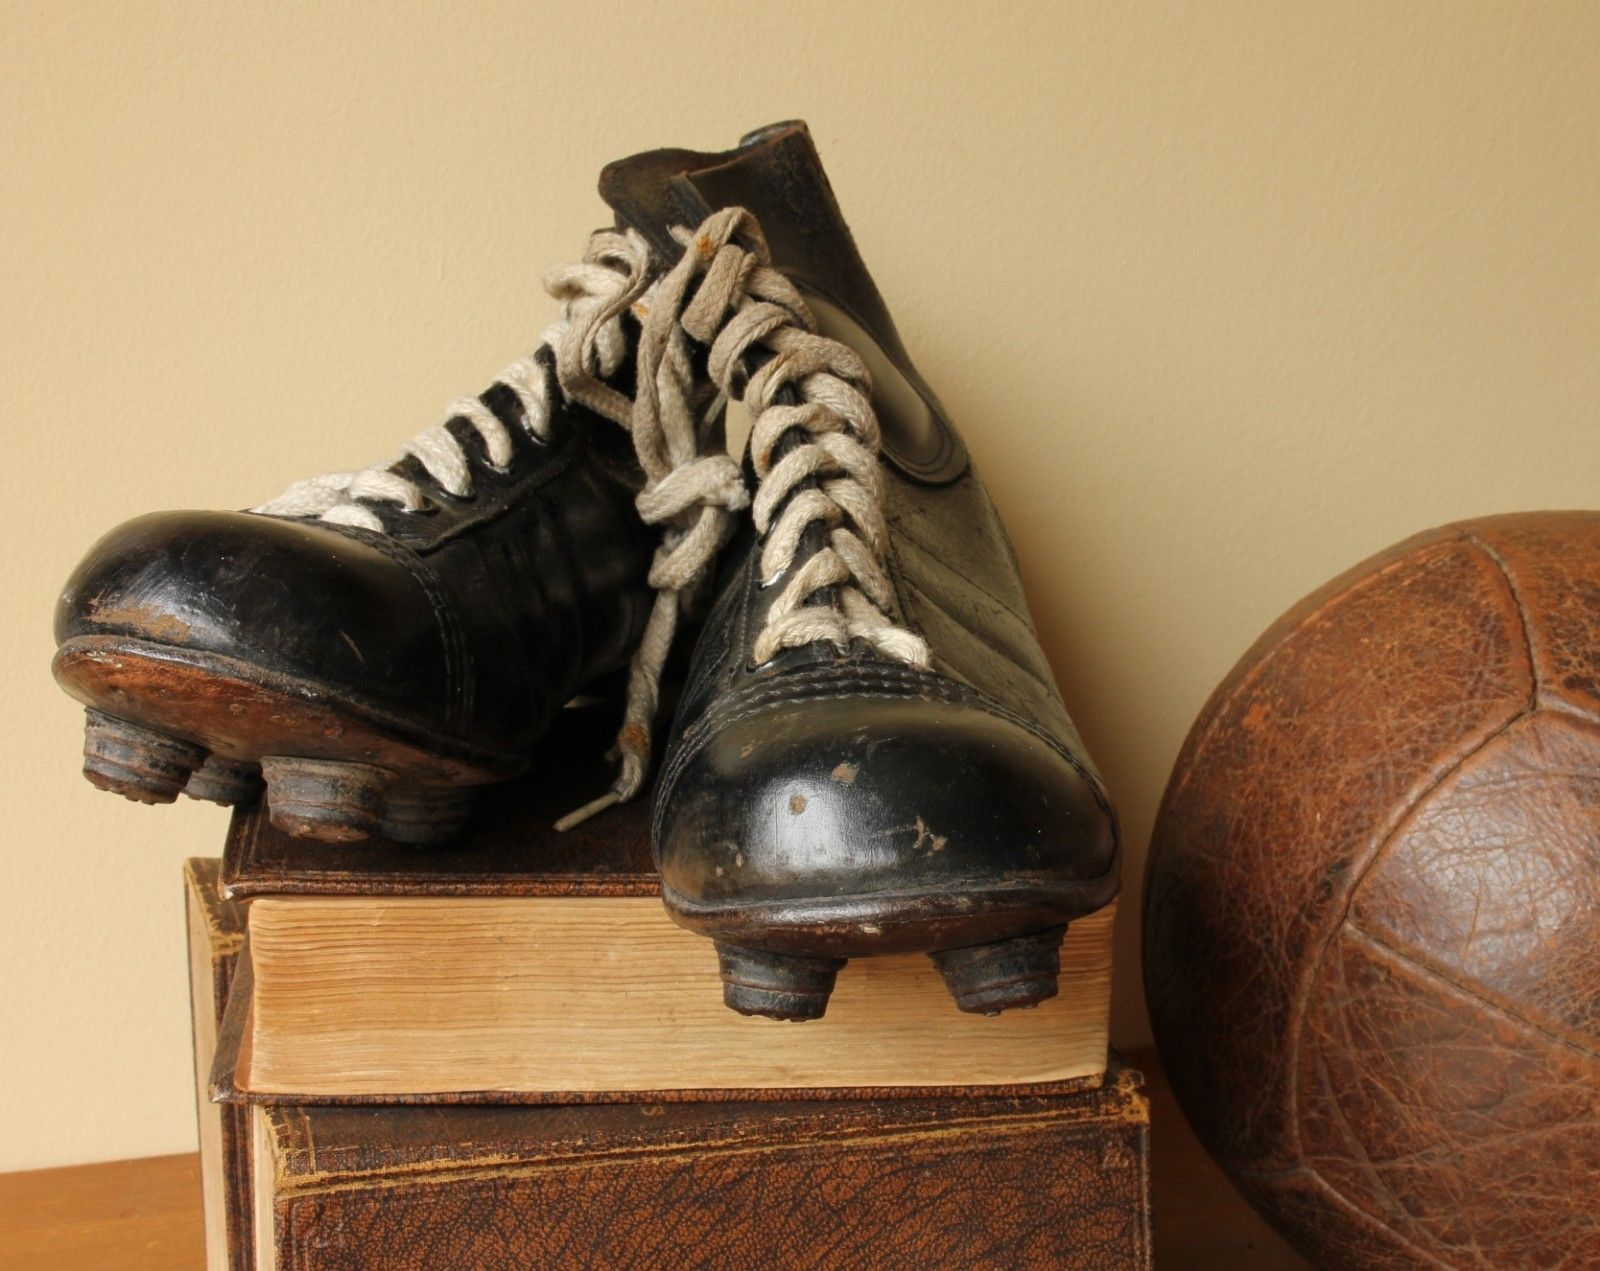 a61e6823df06 Vintage Pocock Pentagon Black Leather Football Boots. Old Soccer Cleats  c1950.